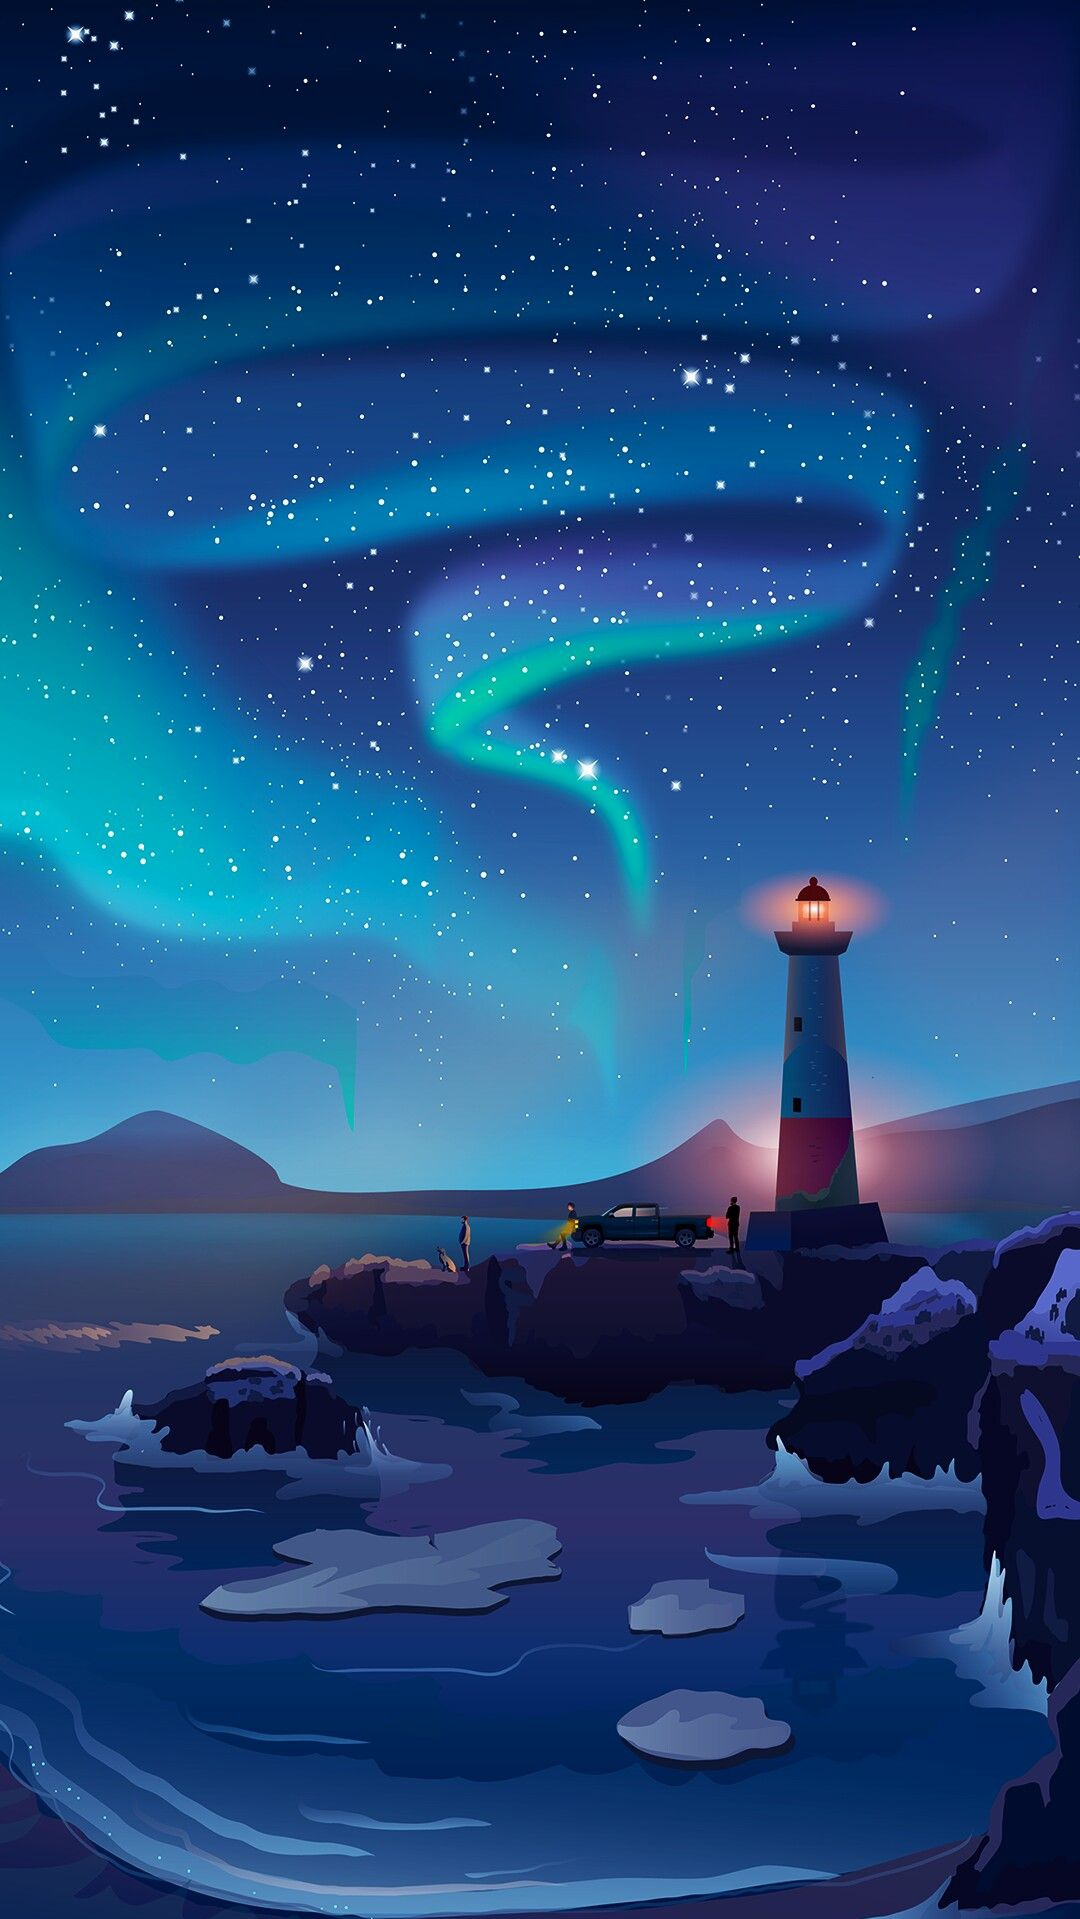 Light House Artistic Beach Night Sky iPhone Wallpaper iphoneswallpapers com